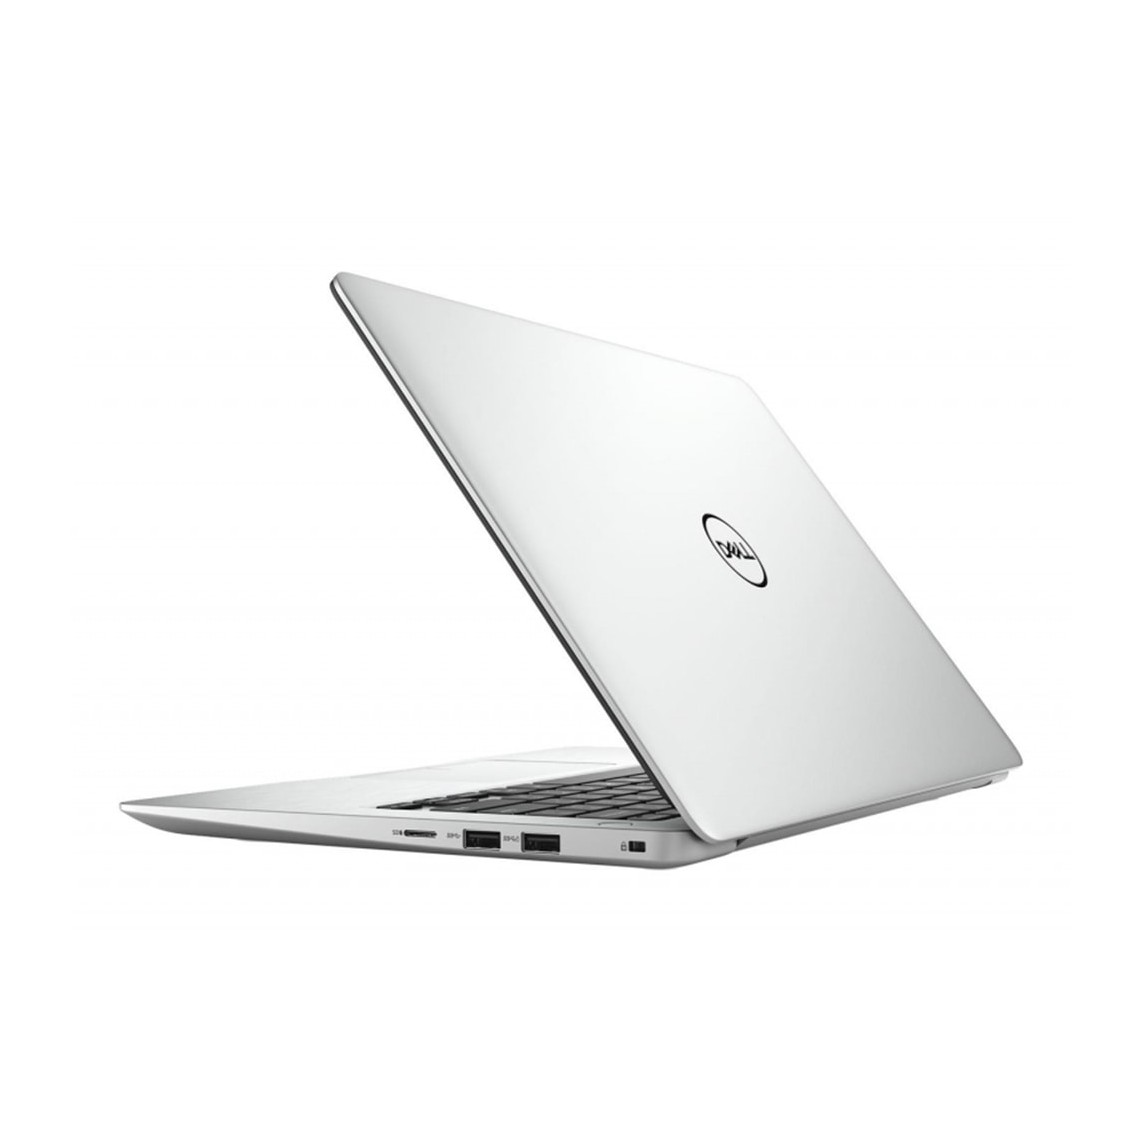 DELL INSPIRON N430 DRIVERS UPDATE